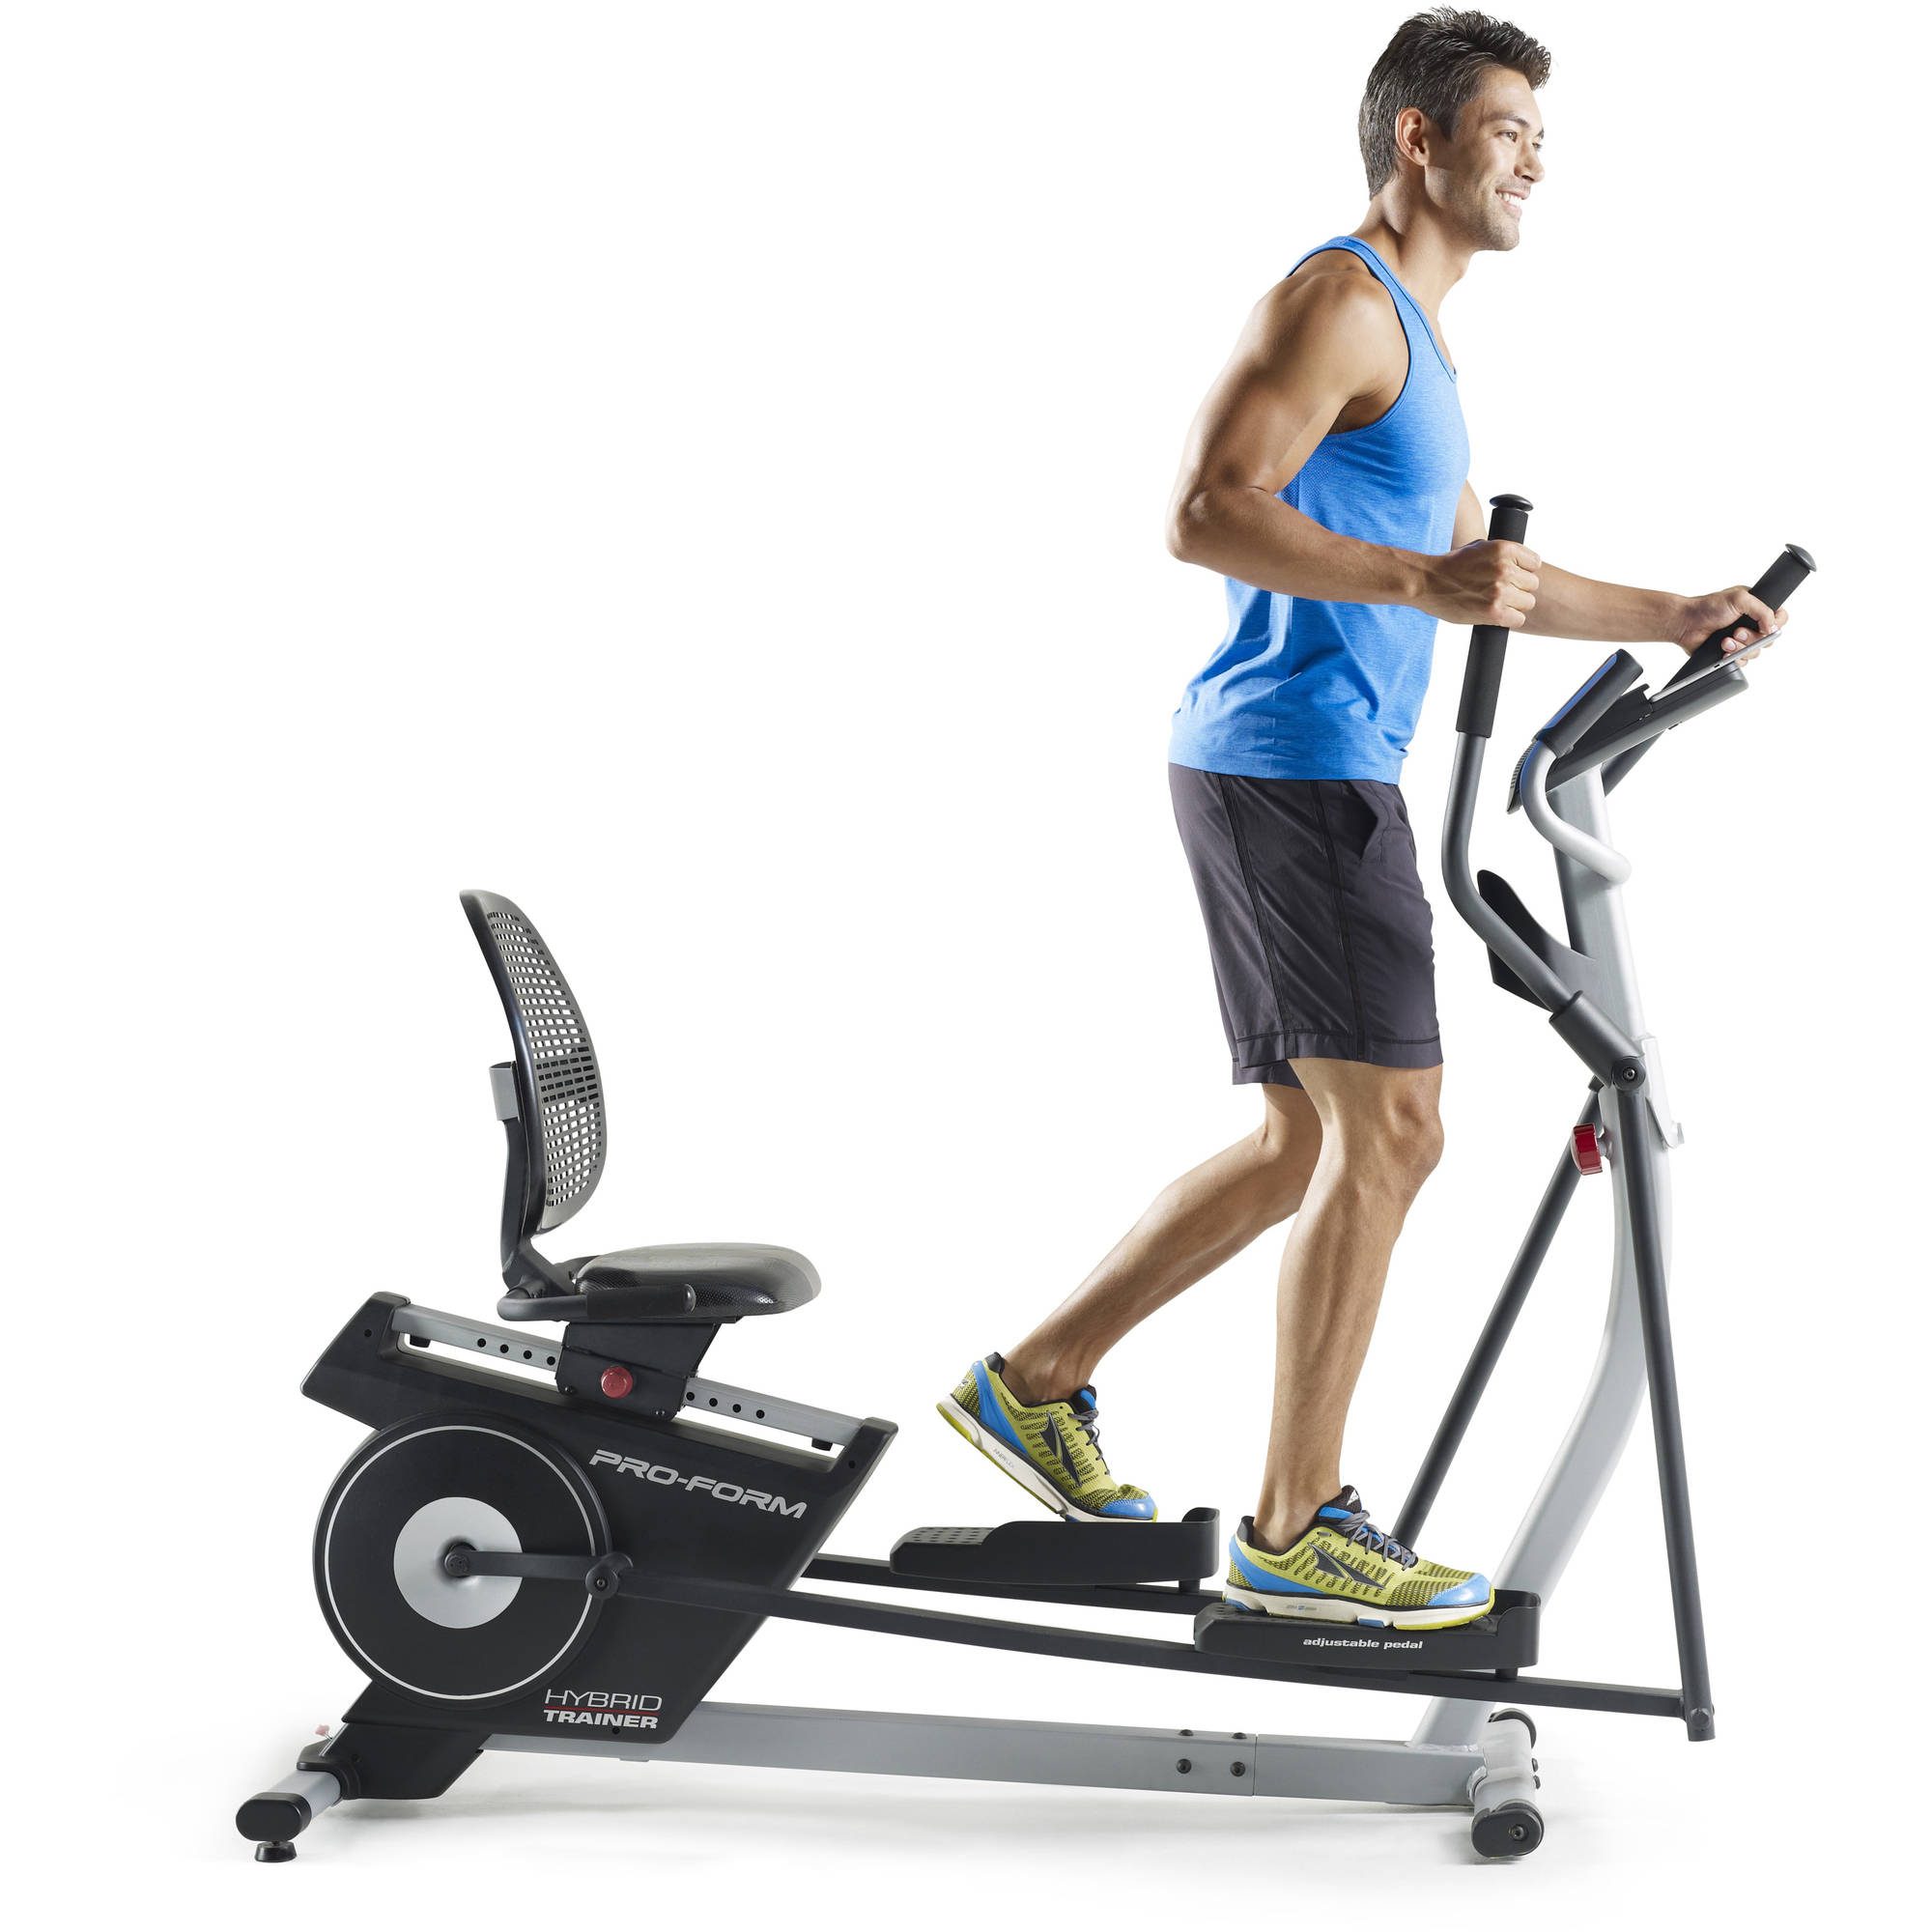 ProForm Hybrid Trainer 2-in-1 Elliptical/Recumbent Bike